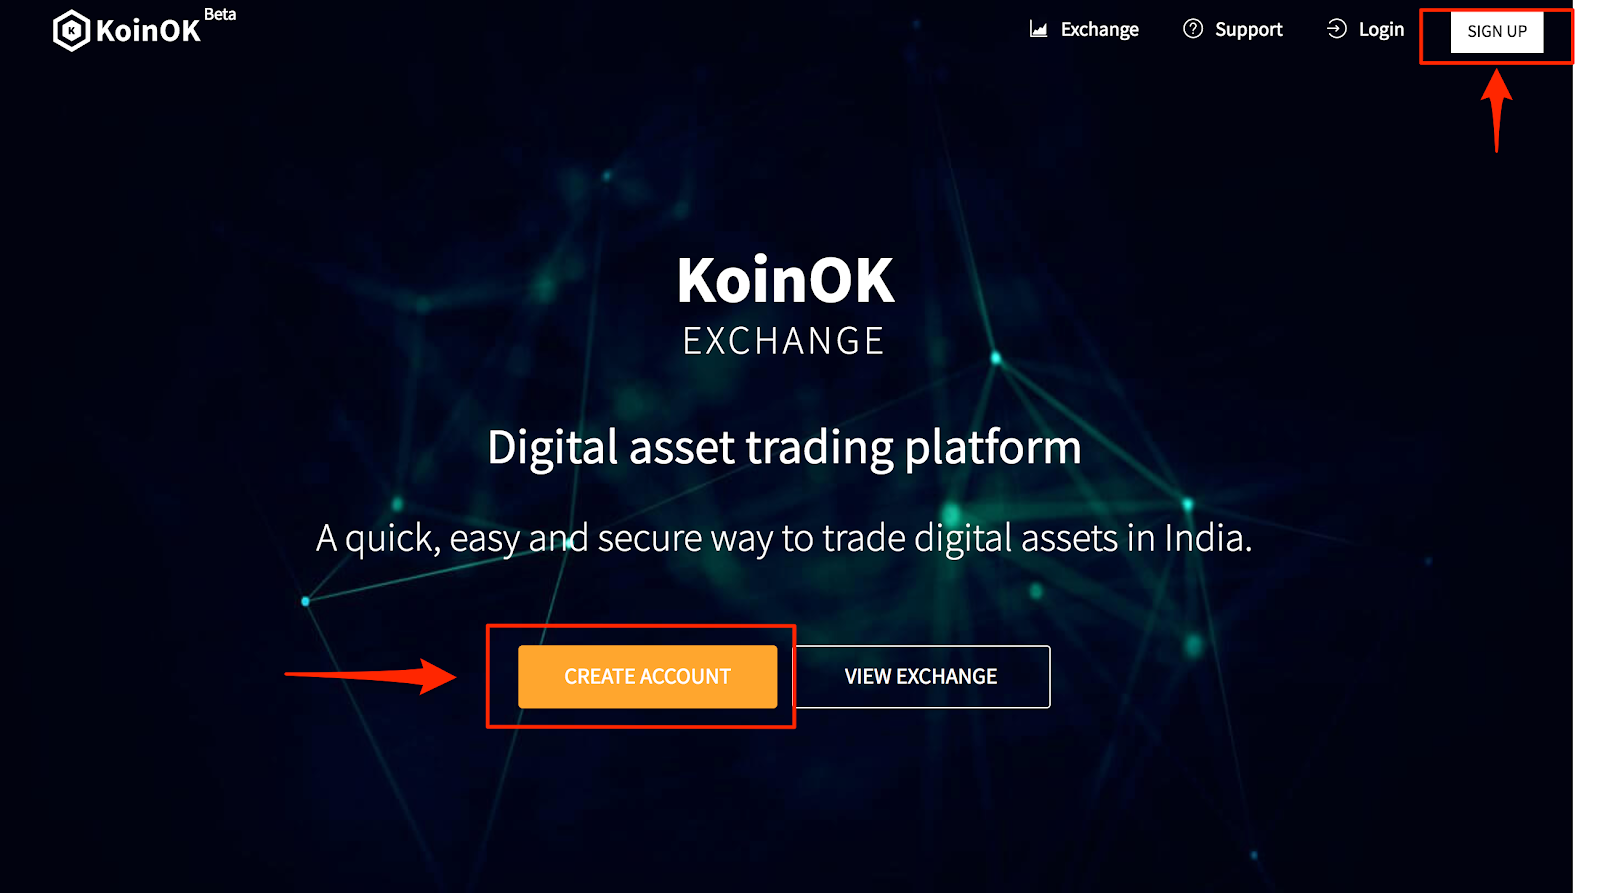 How to create Account on KoinOK